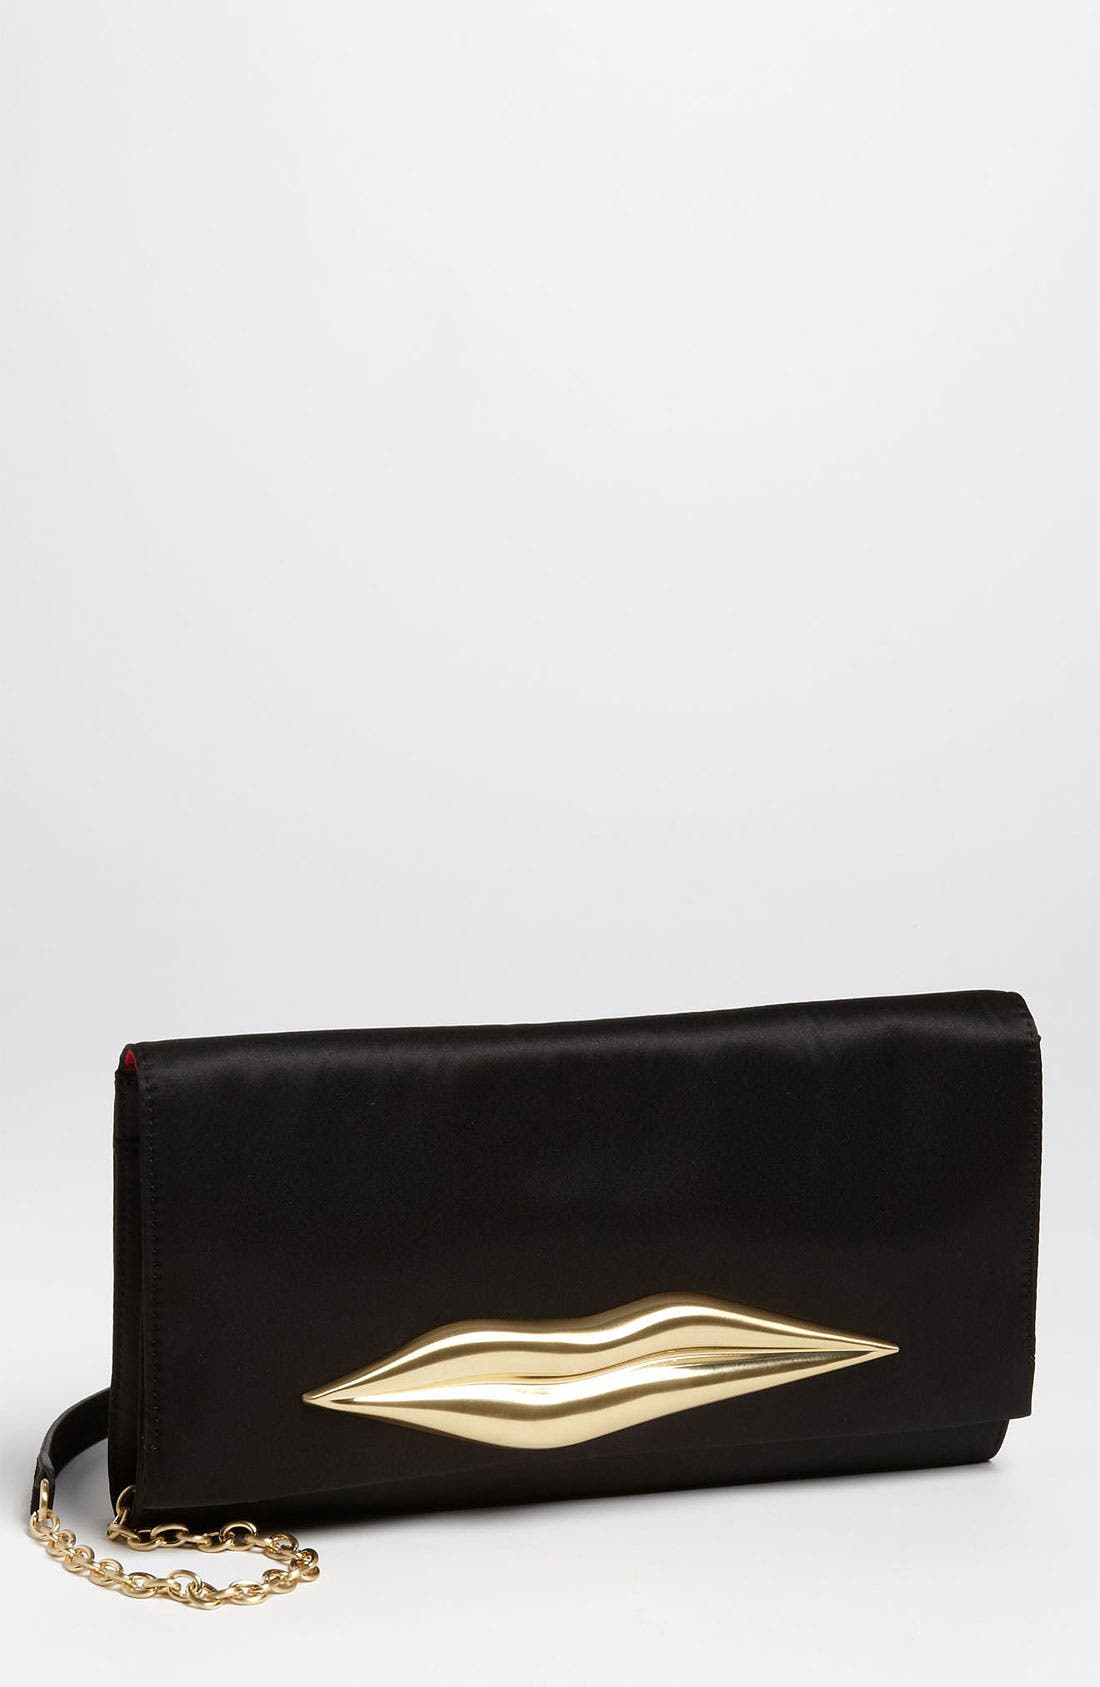 Main Image - Diane von Furstenberg 'Carolina Lip' Satin Clutch